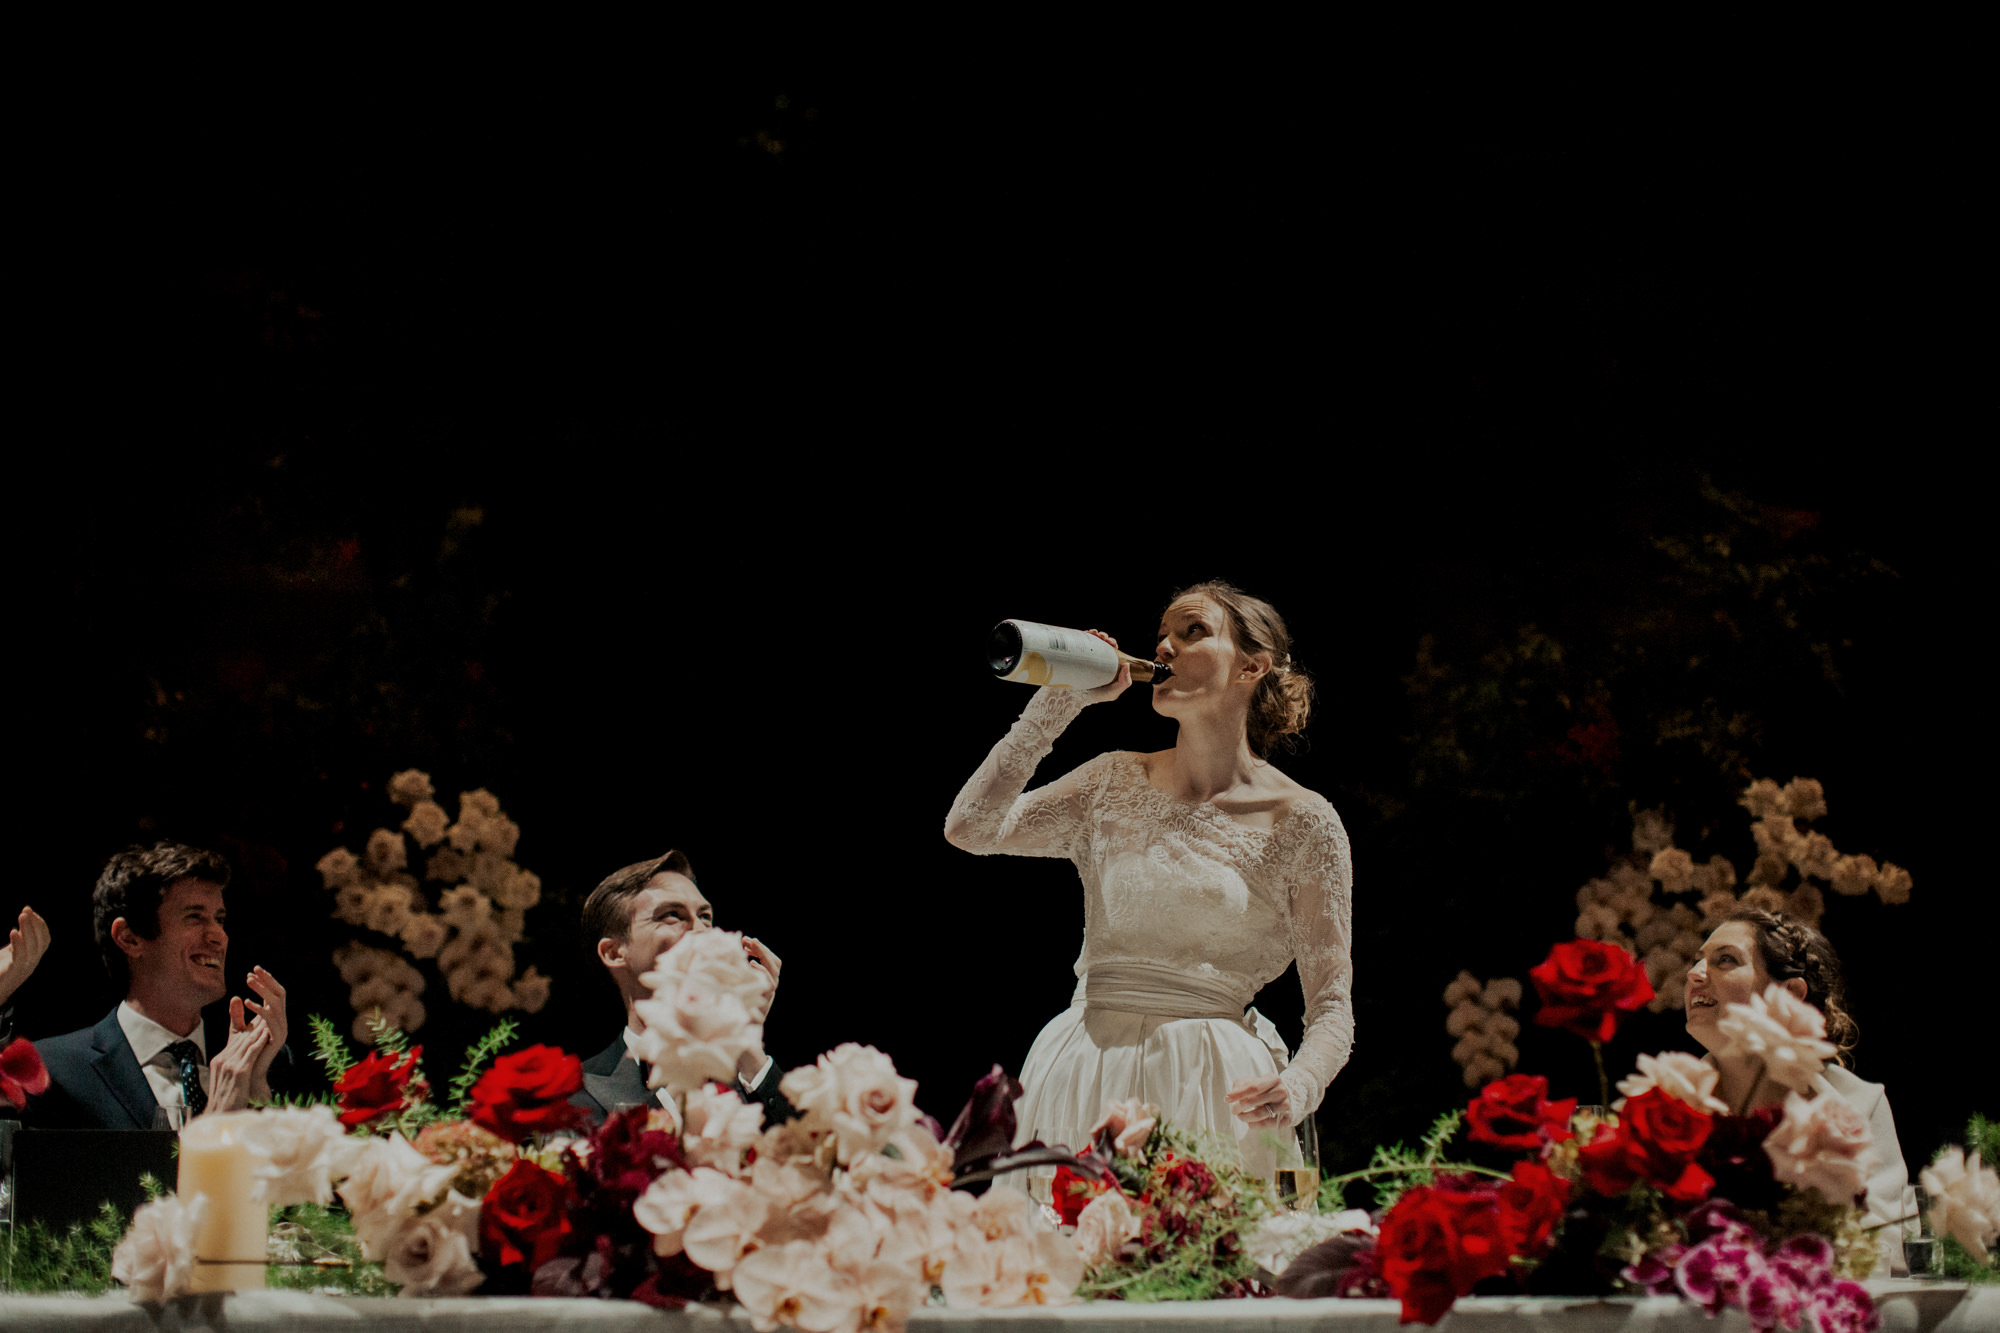 Bride drinking straight from champagne bottle at wedding table - photo by Dan O'Day - Austrailia